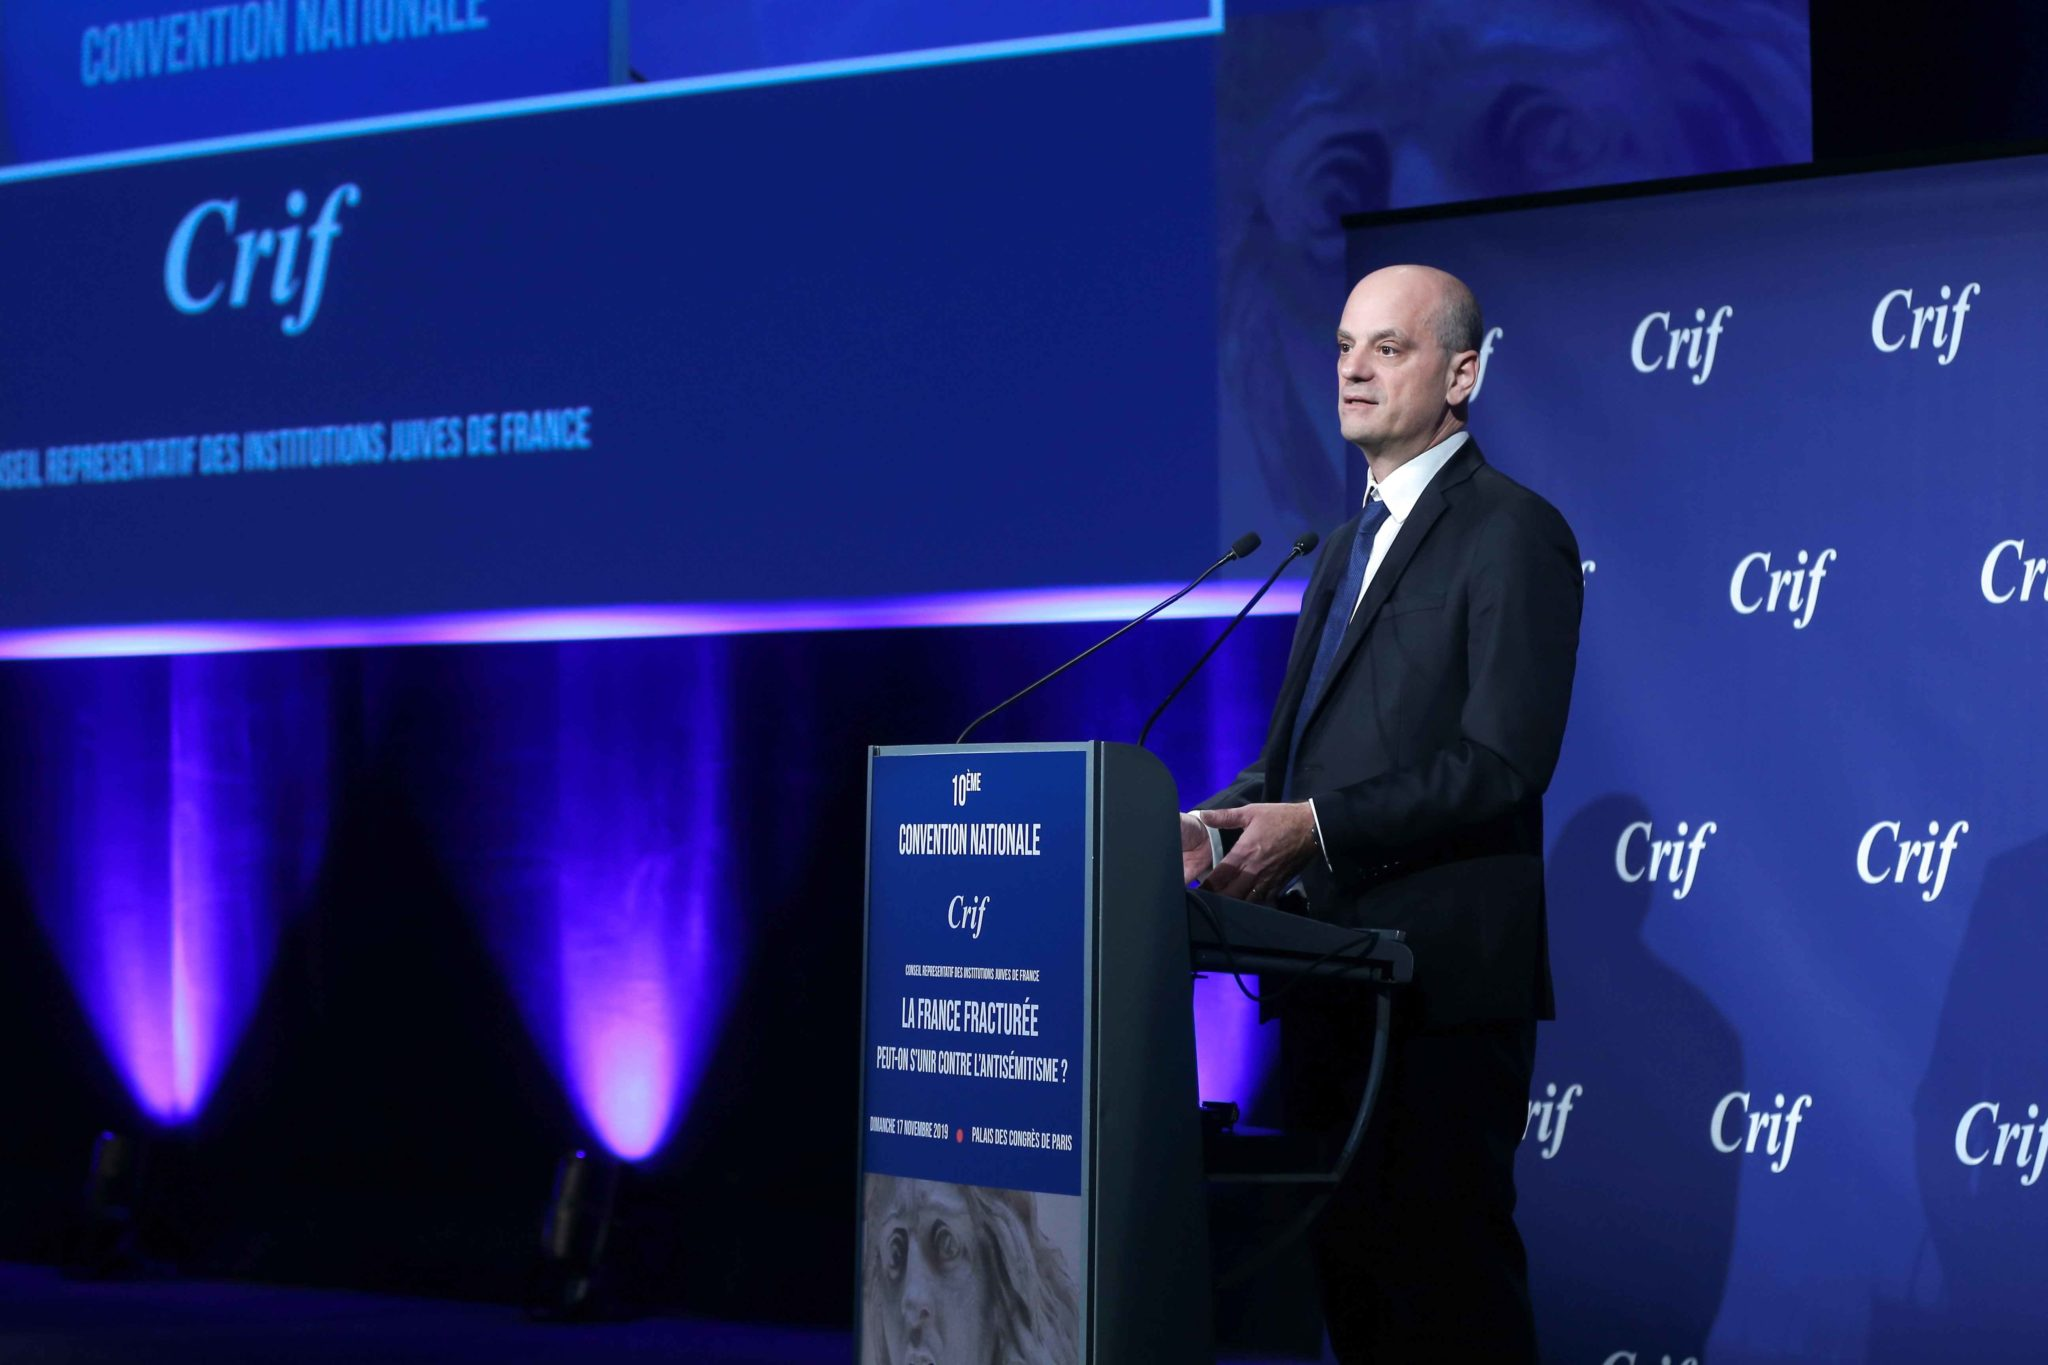 French Education and Youth Affairs Minister Jean-Michel Blanquer (C) takes part in the 10th national convention of the Representative Council of Jewish Institutions of France (CRIF - Conseil Representatif des Institutions juives de France) on November 17,